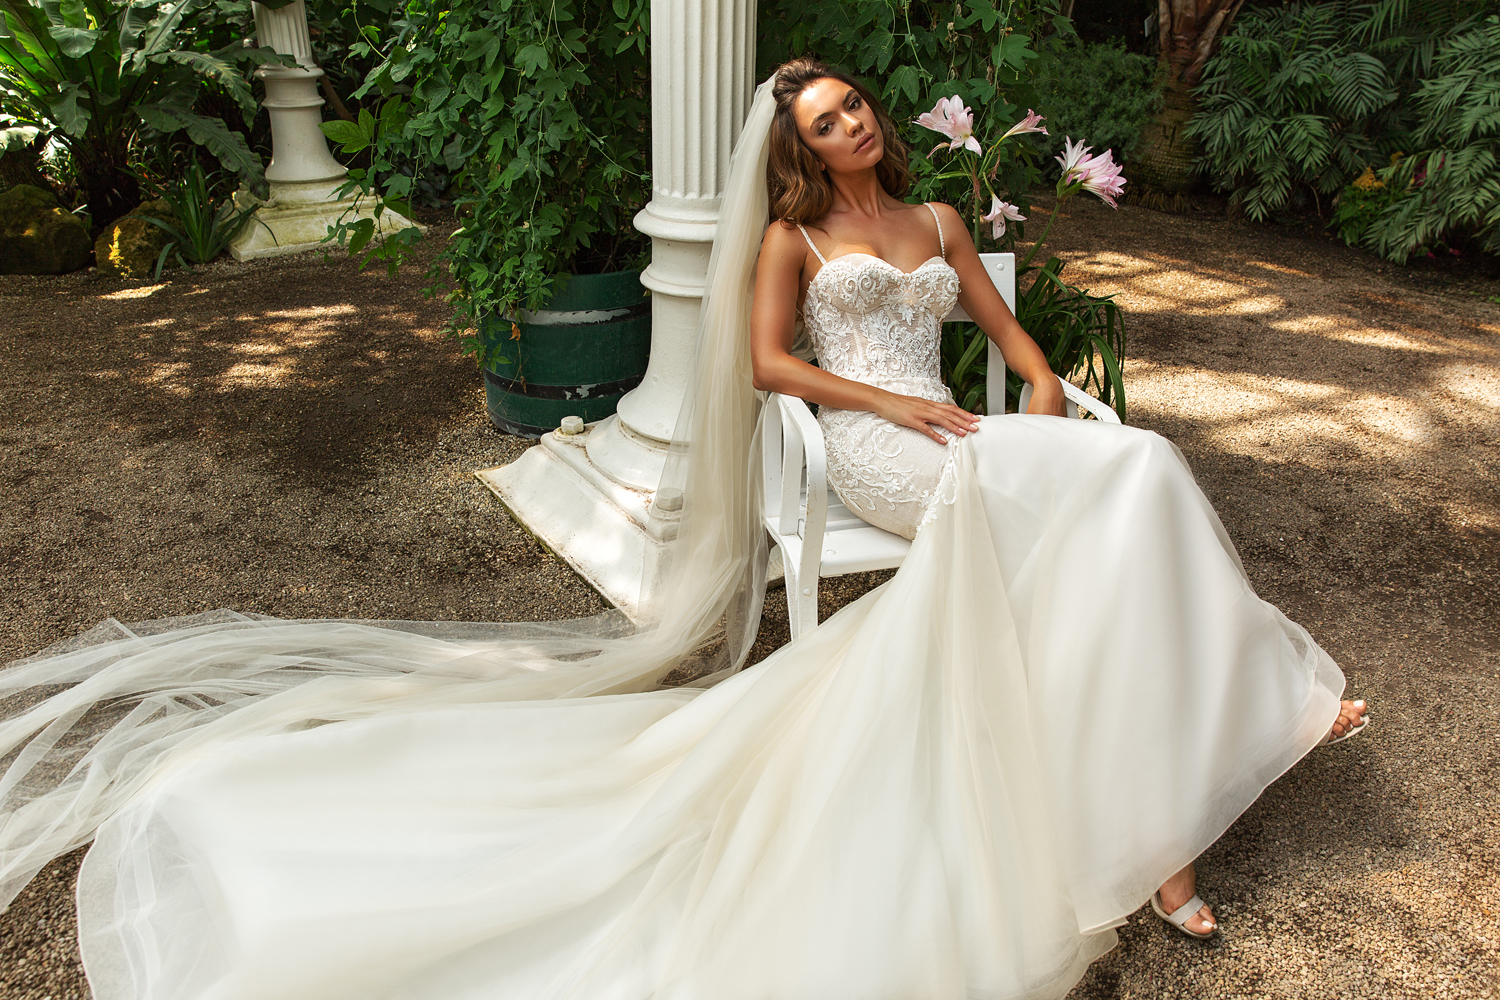 spaghetti strap wedding gown by Crystal Design Couture